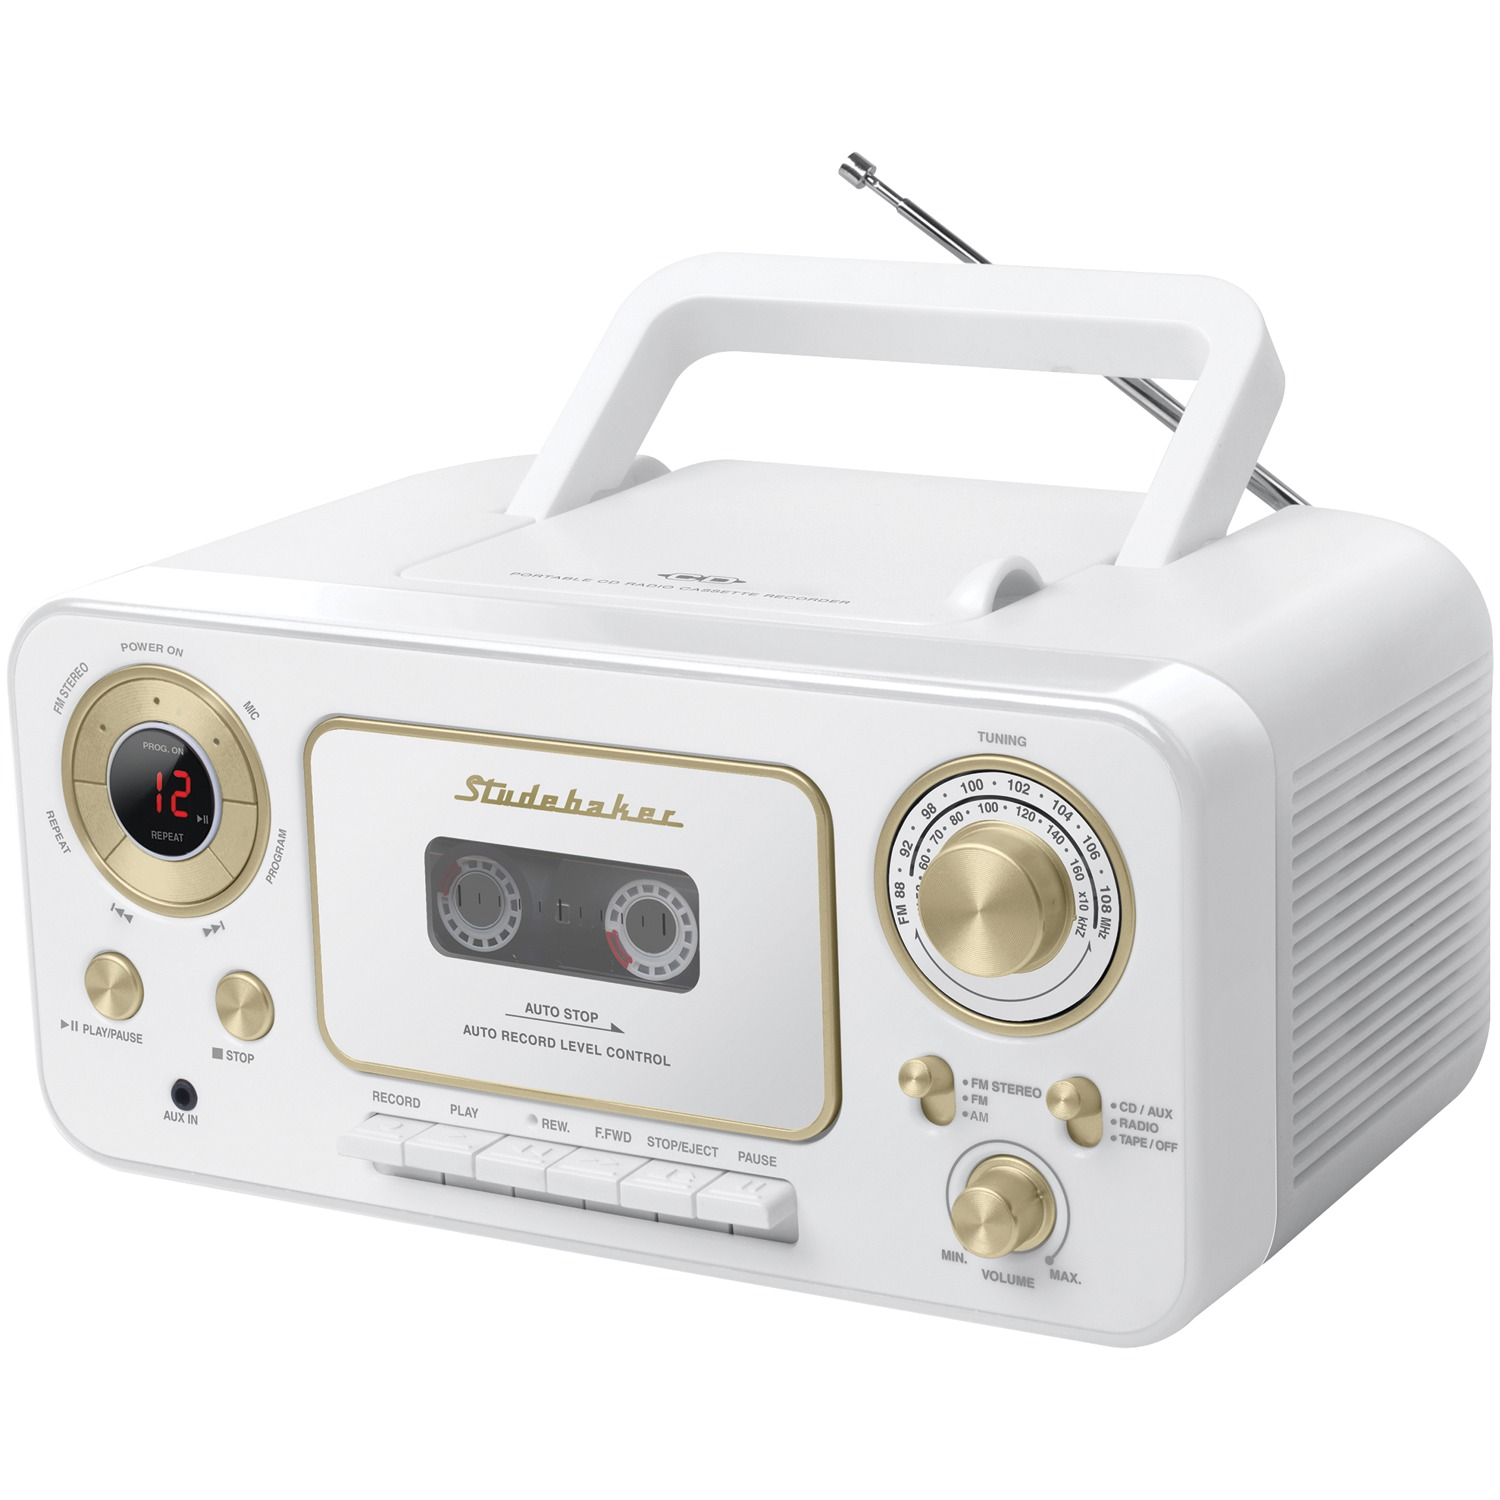 Studebaker SB2135WG Portable CD Player with AM/FM Radio & Cassette Player/Recorder (White & Gold)